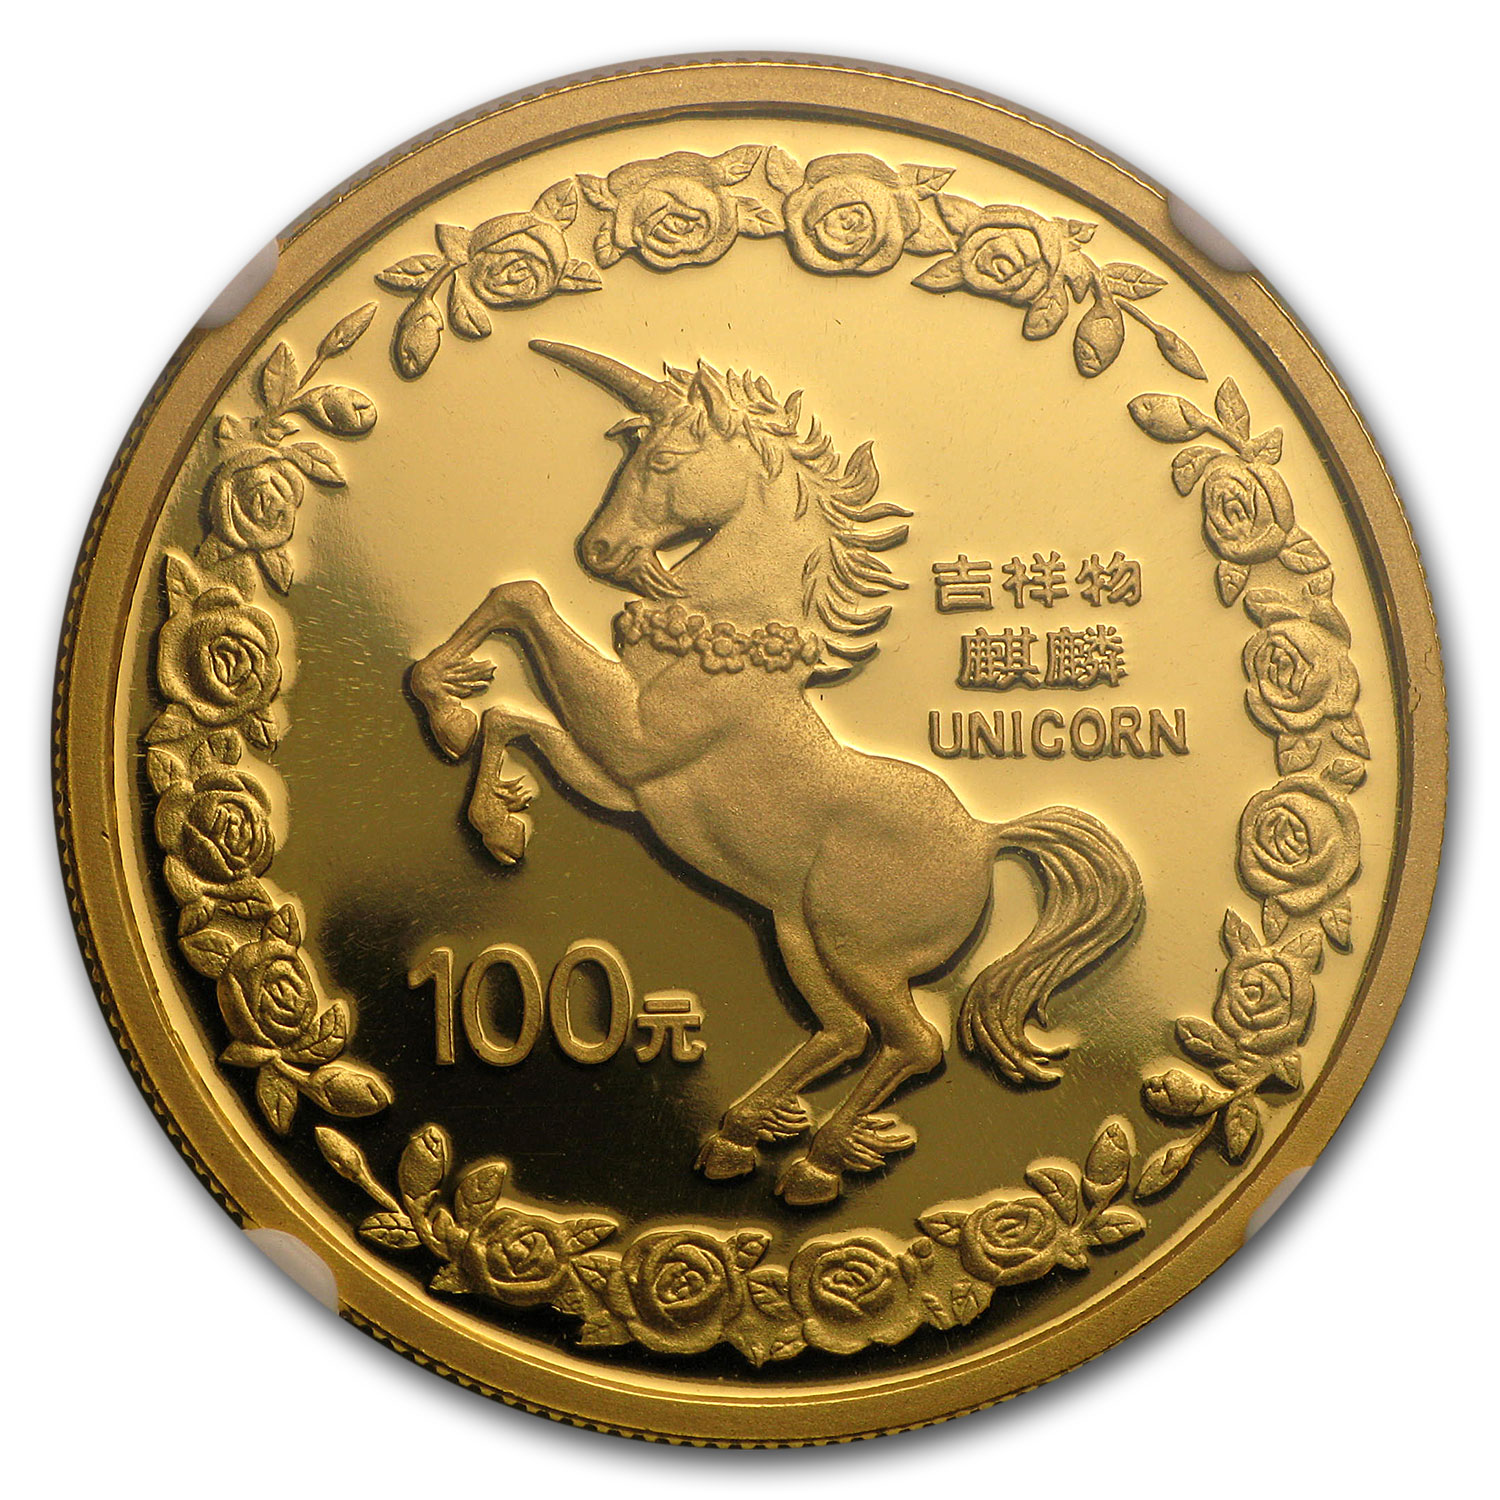 1996 China 1 oz Gold 100 Yuan Unicorn Proof PF-68 NGC